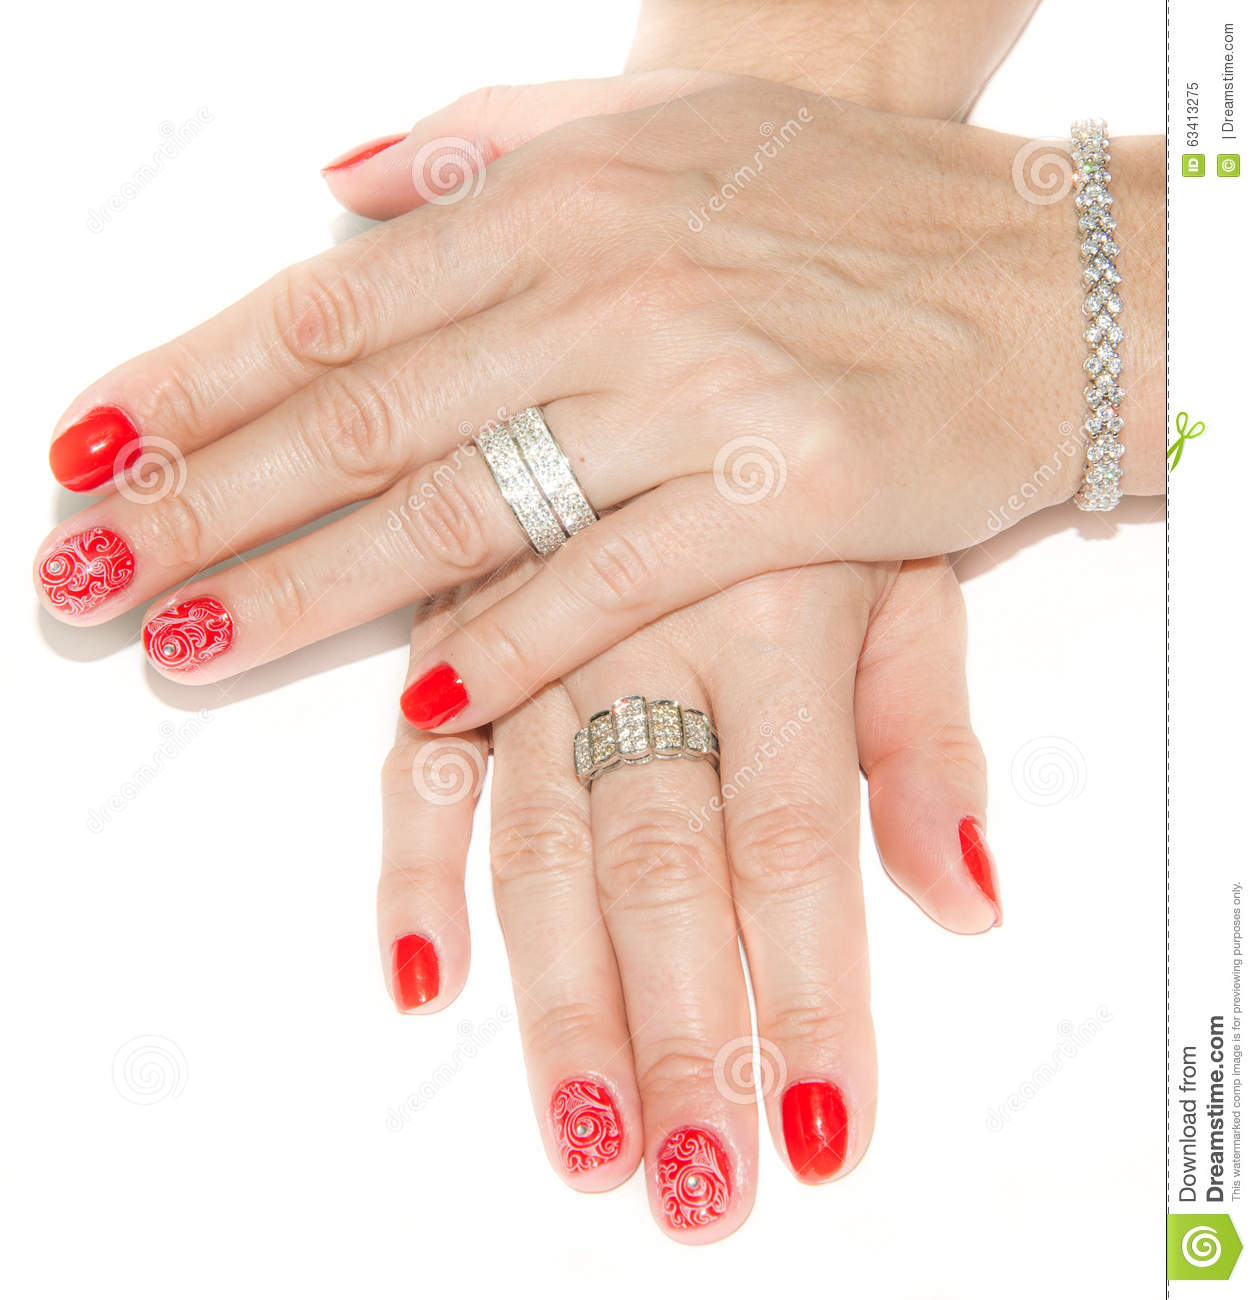 Red Nail Art Design And Diamonds Stock Image Image Of Painted